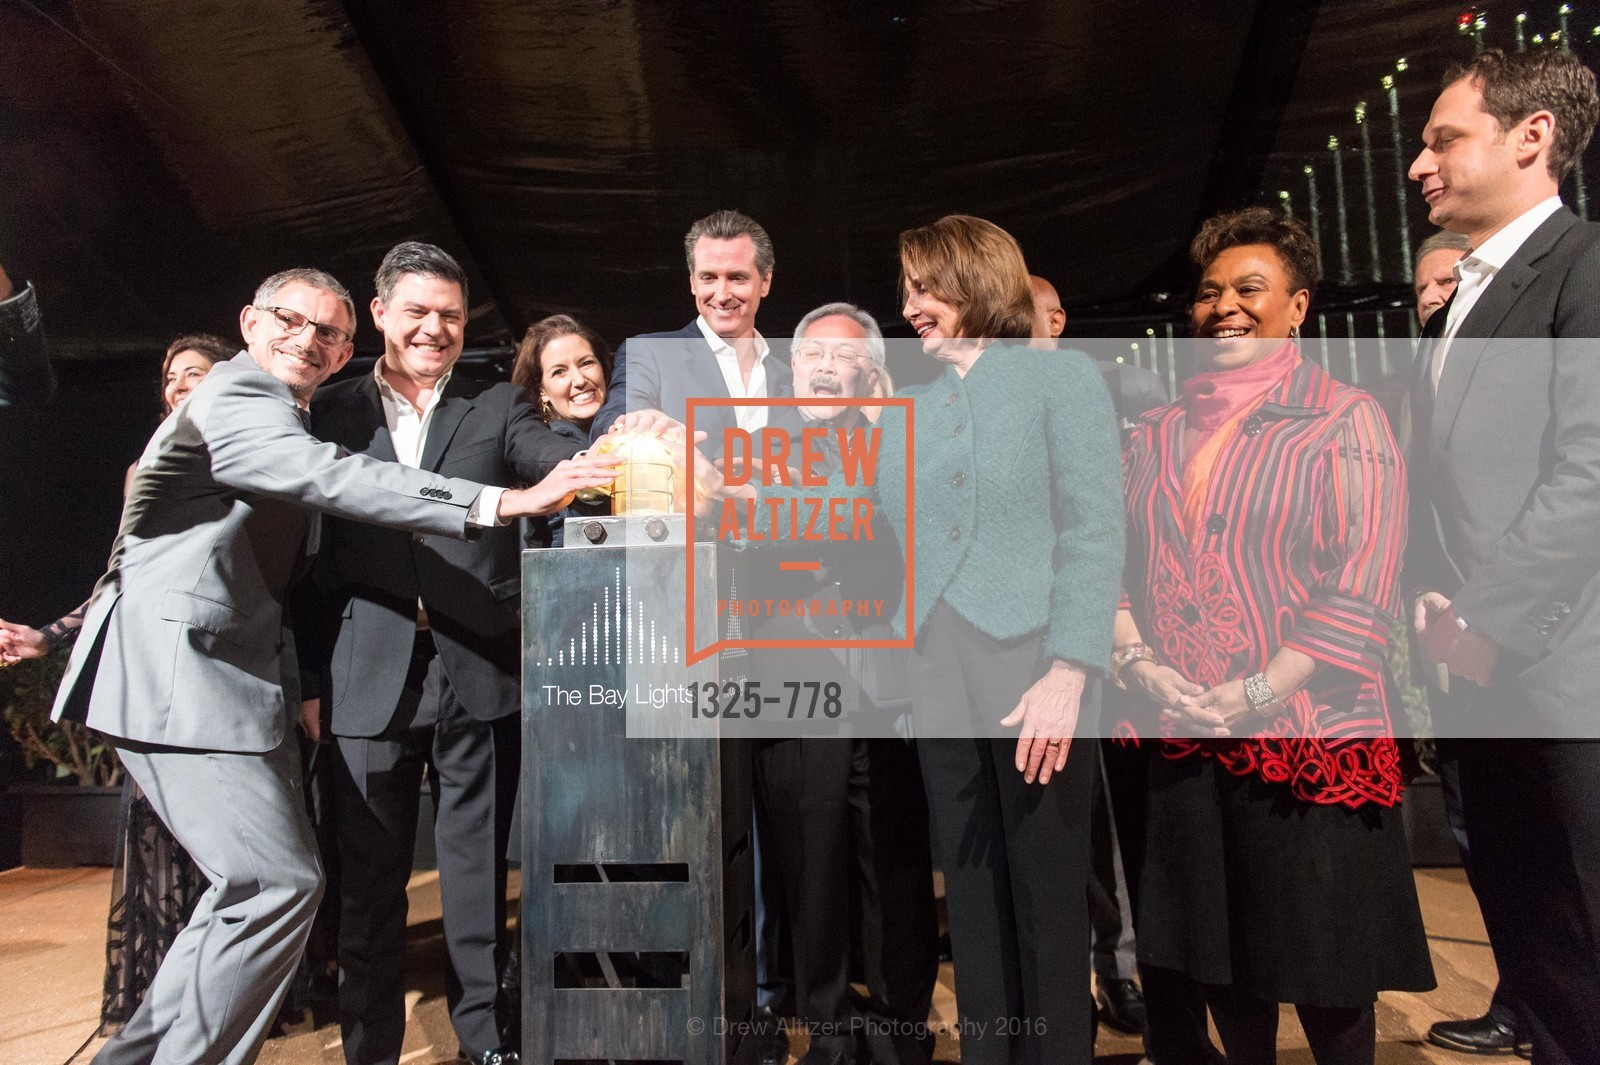 Ben Davis, Leo Villareal, Libby Schaaf, Gavin Newson, Ed Lee, Nancy Pelosi, Barbara Lee, Daniel Lurie, The Bay Lights Grand Relighting Celebration, Epic Steakhouse. 369 The Embarcadero, January 29th, 2016,Drew Altizer, Drew Altizer Photography, full-service agency, private events, San Francisco photographer, photographer california